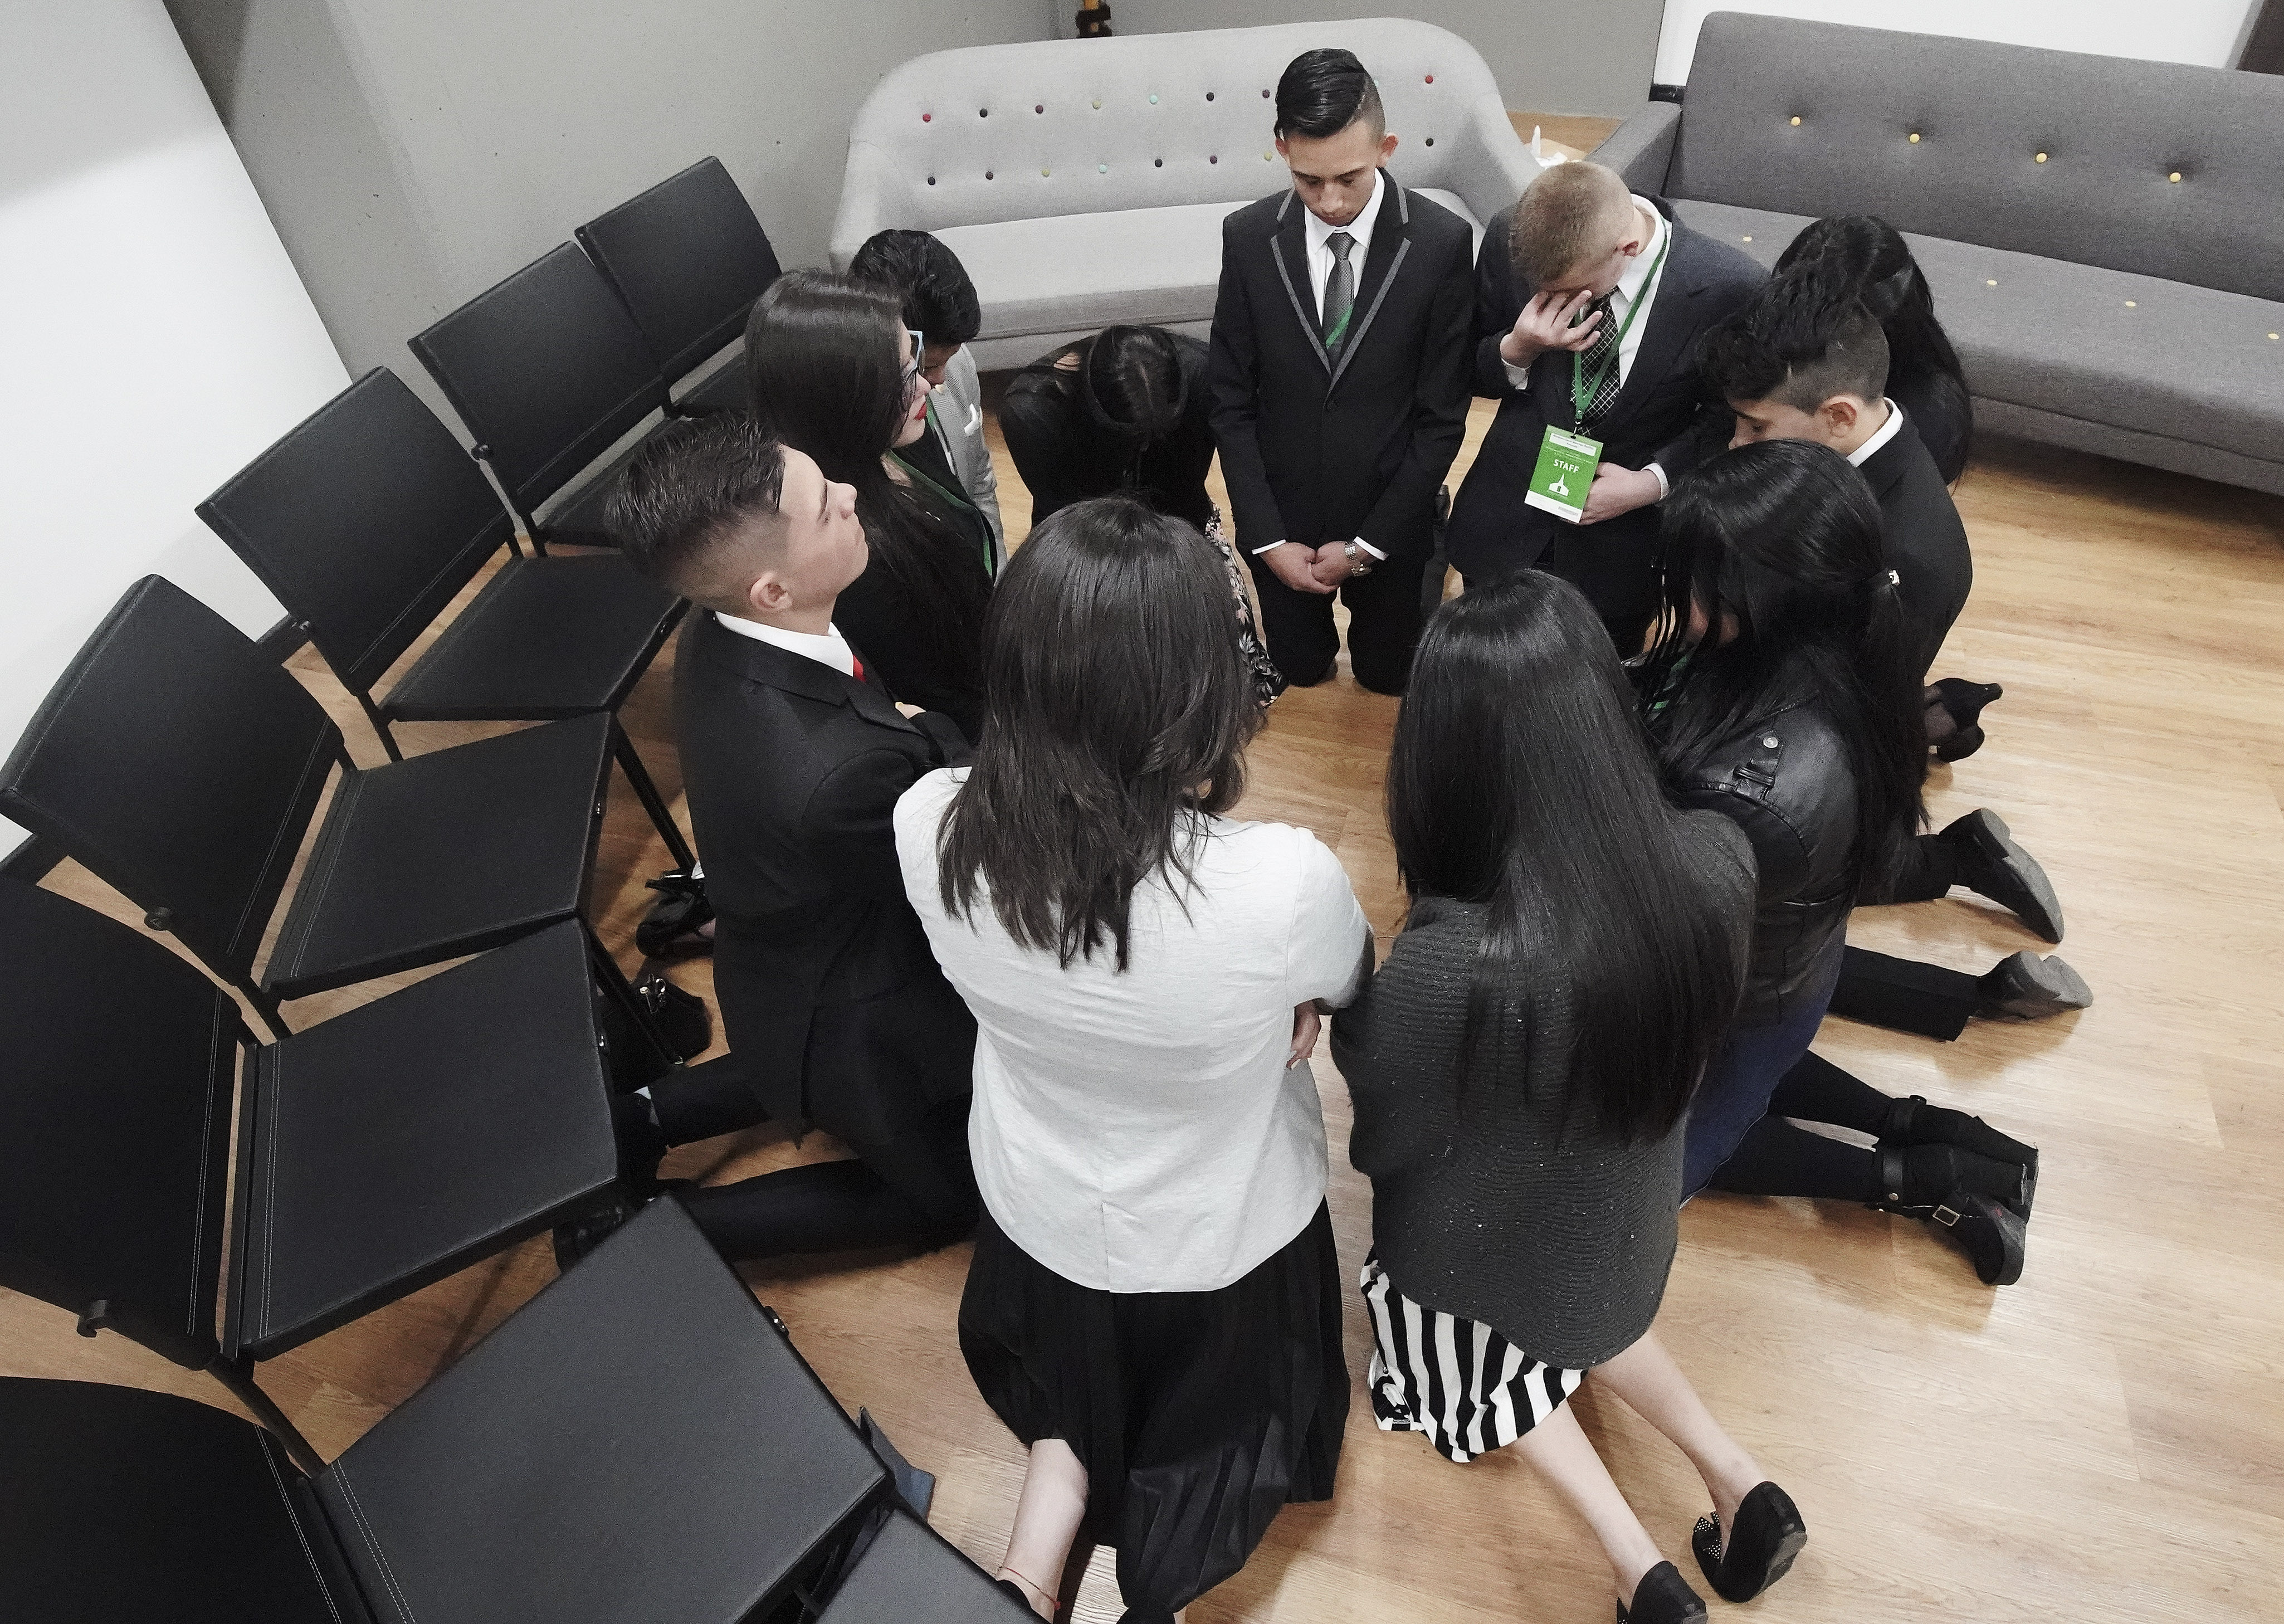 Youth attendees pray prior to meeting President Russell M. Nelson of The Church of Jesus Christ of Latter-day Saints in Bogota, Colombia, on Sunday, Aug. 25, 2019.